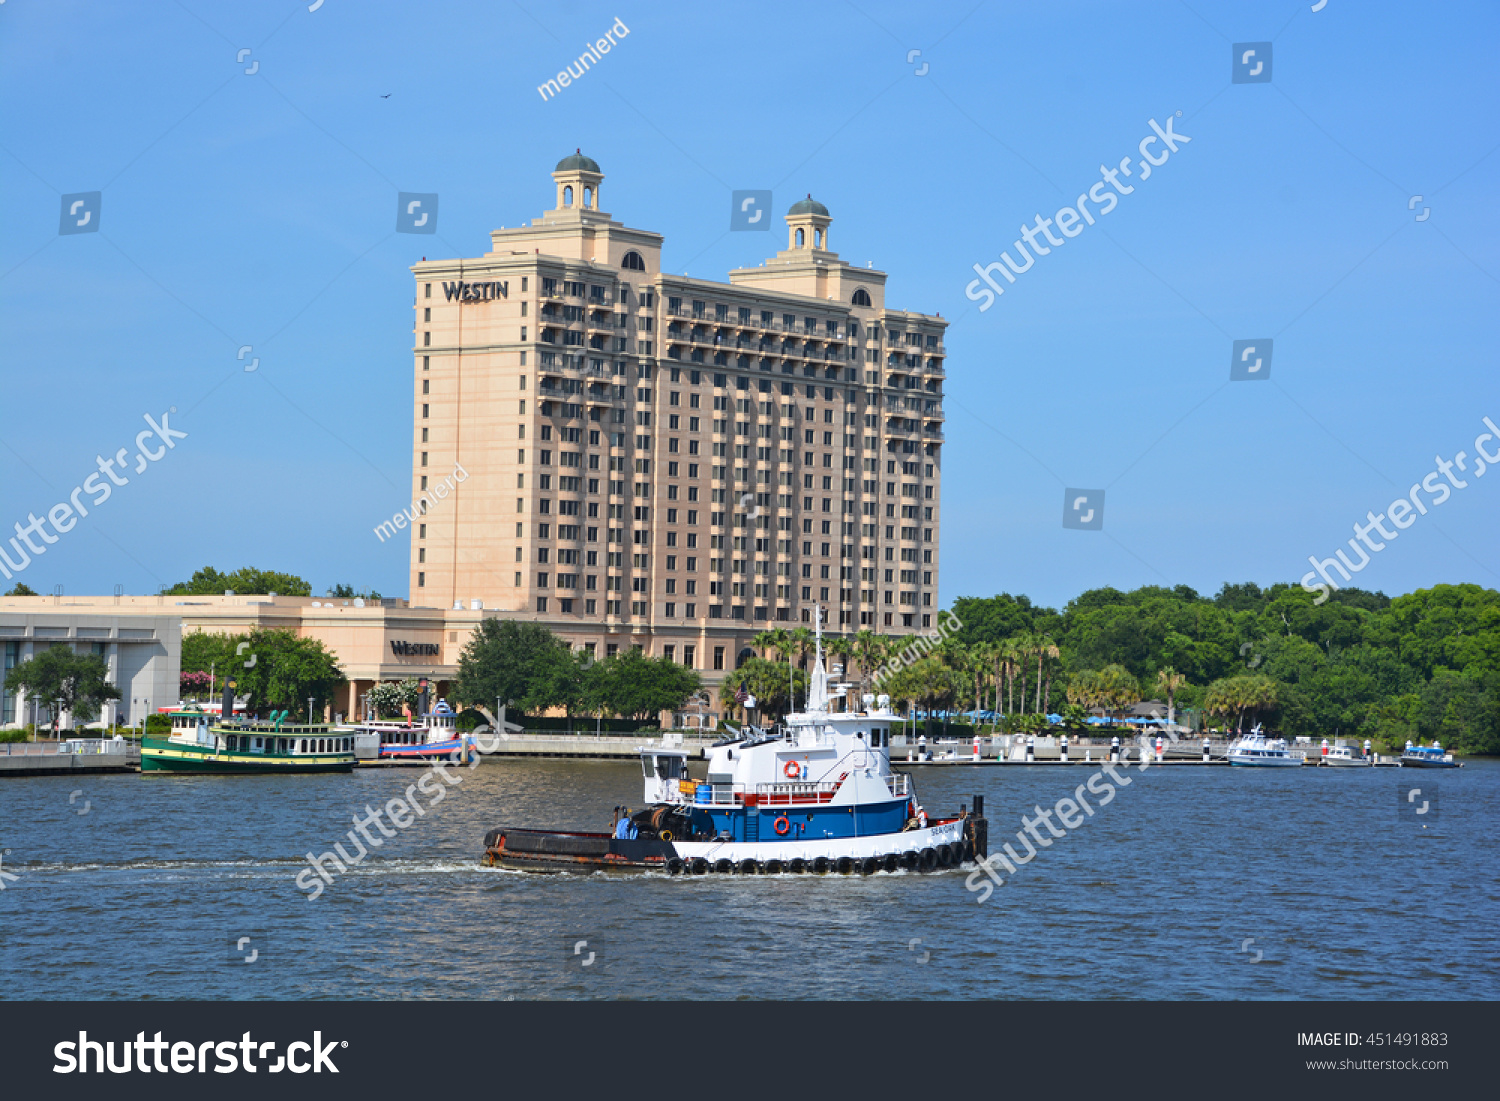 Savannah georgia usa 06 27 2016 stock photo 451491883 for How to become a builder in ga